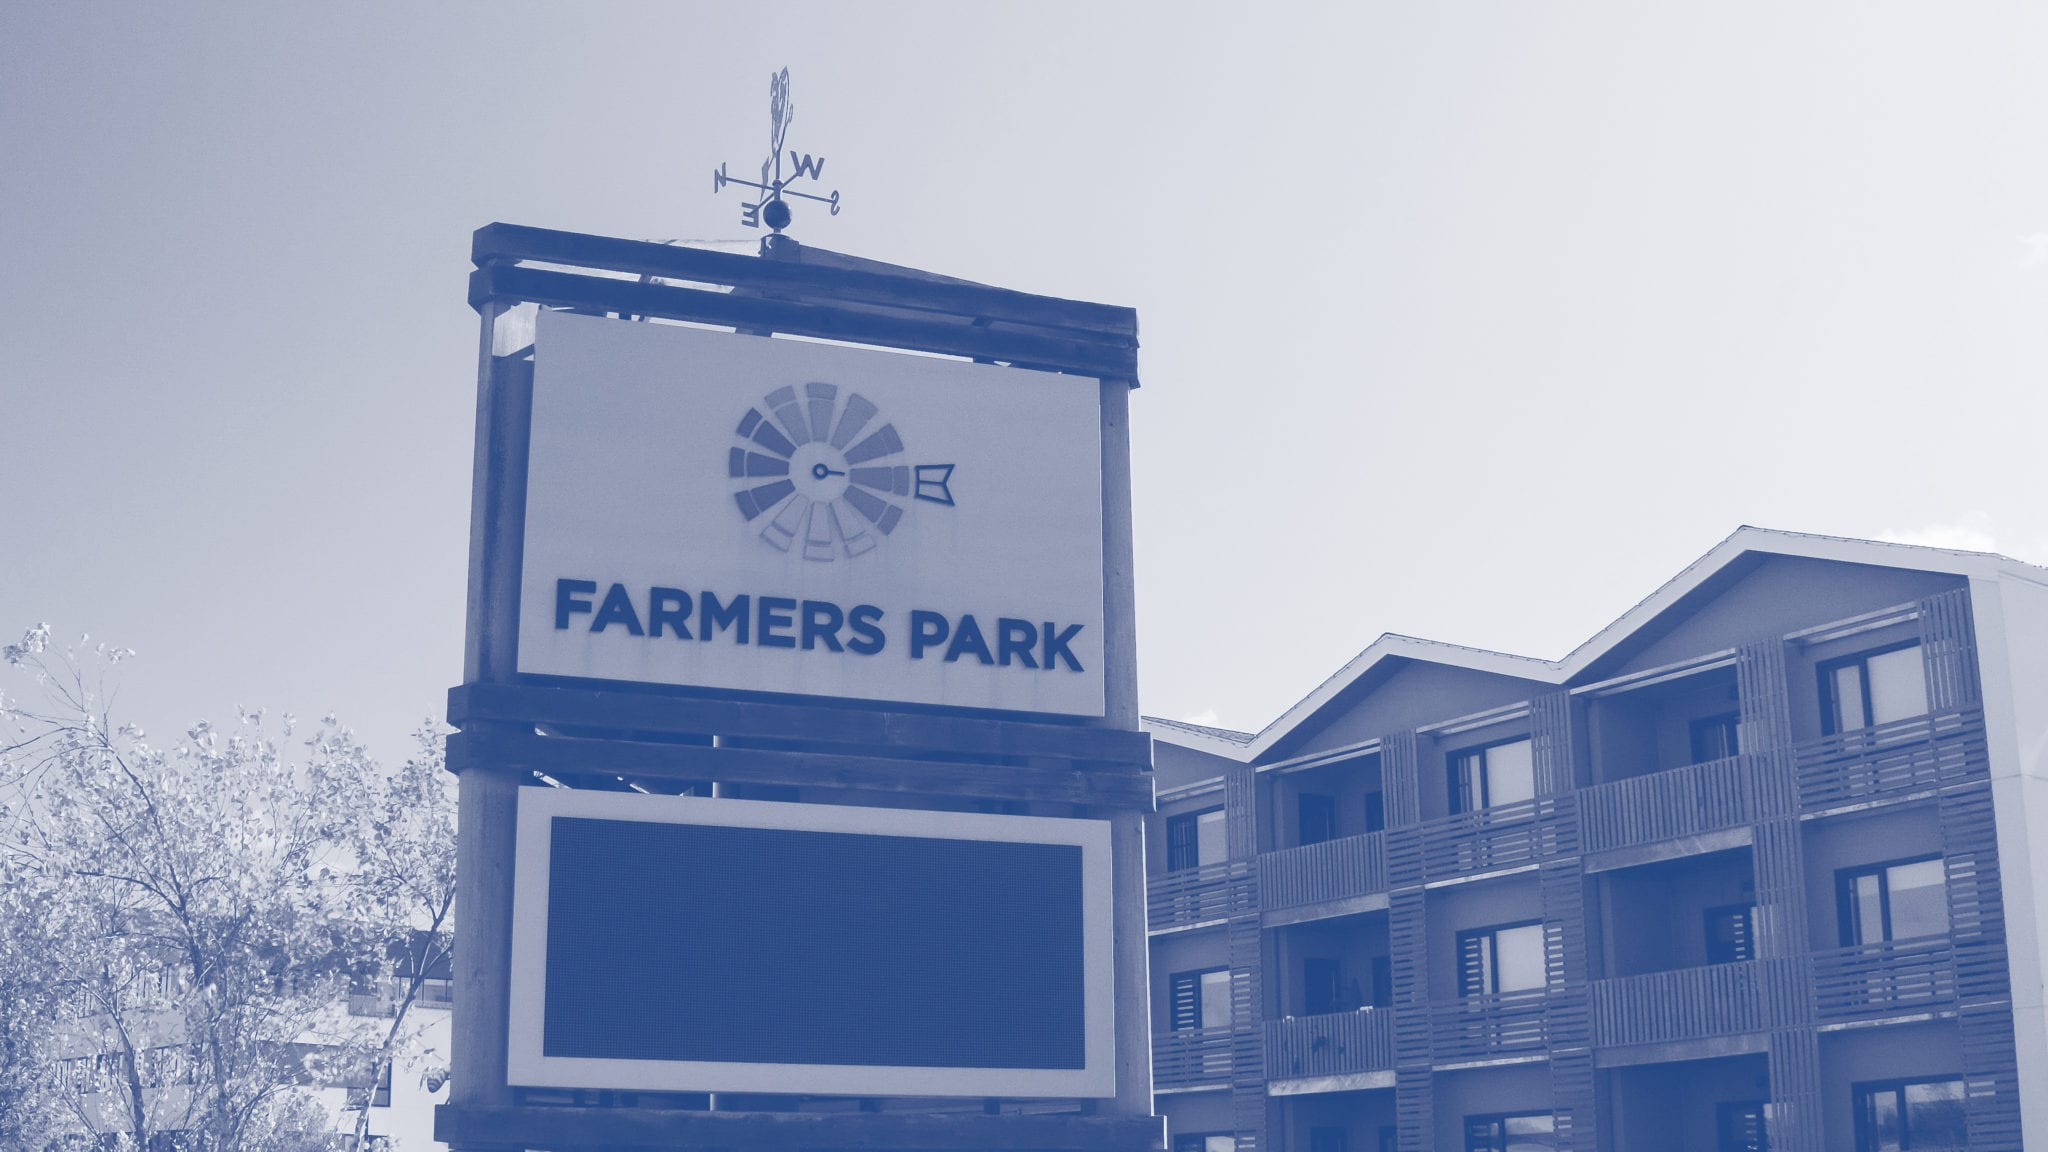 Farmers park sign with blue duotone